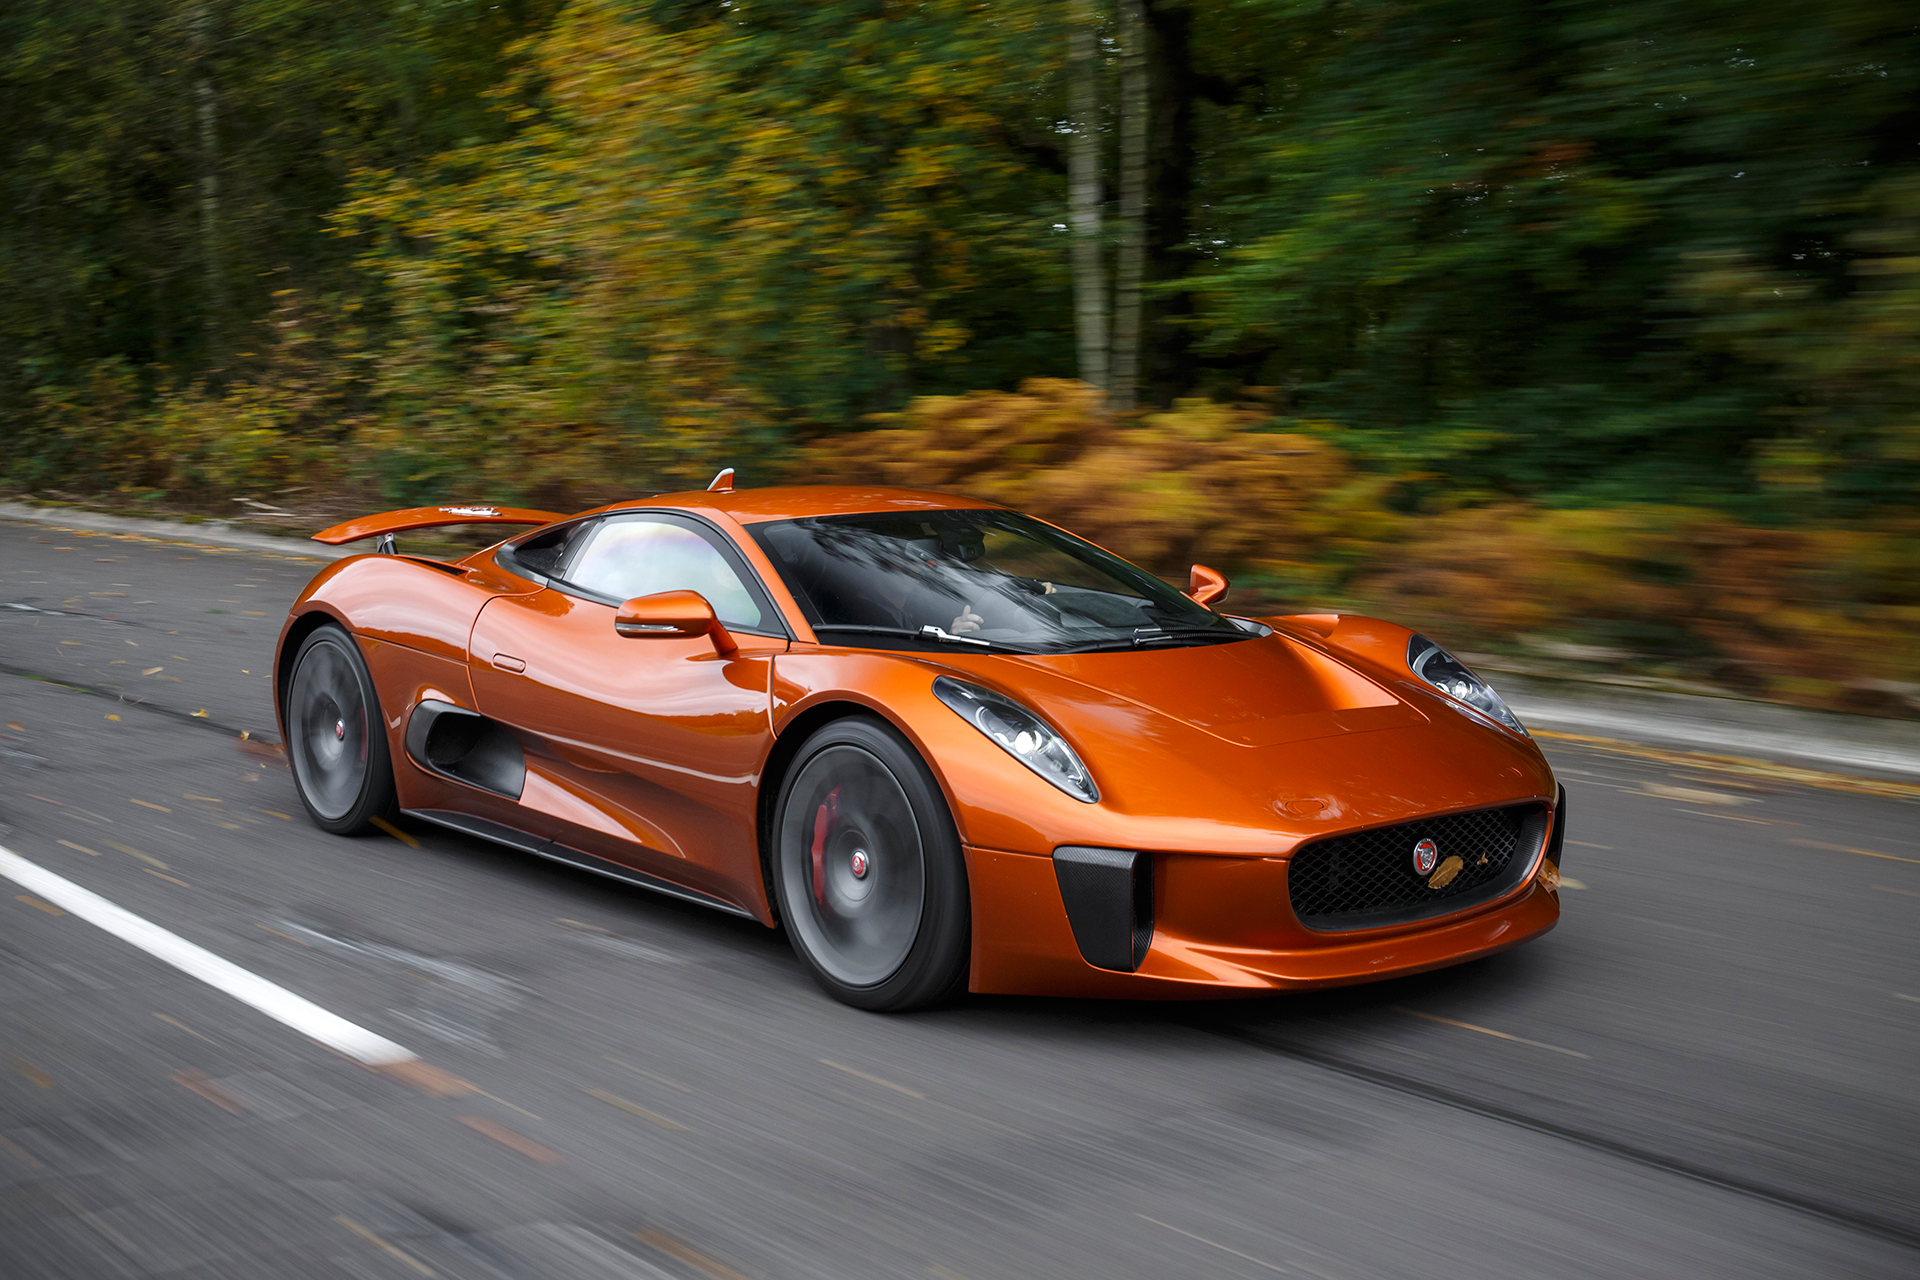 Jaguar C-X75 - Spectre - 2015 - profil avant / front side-face - route / road